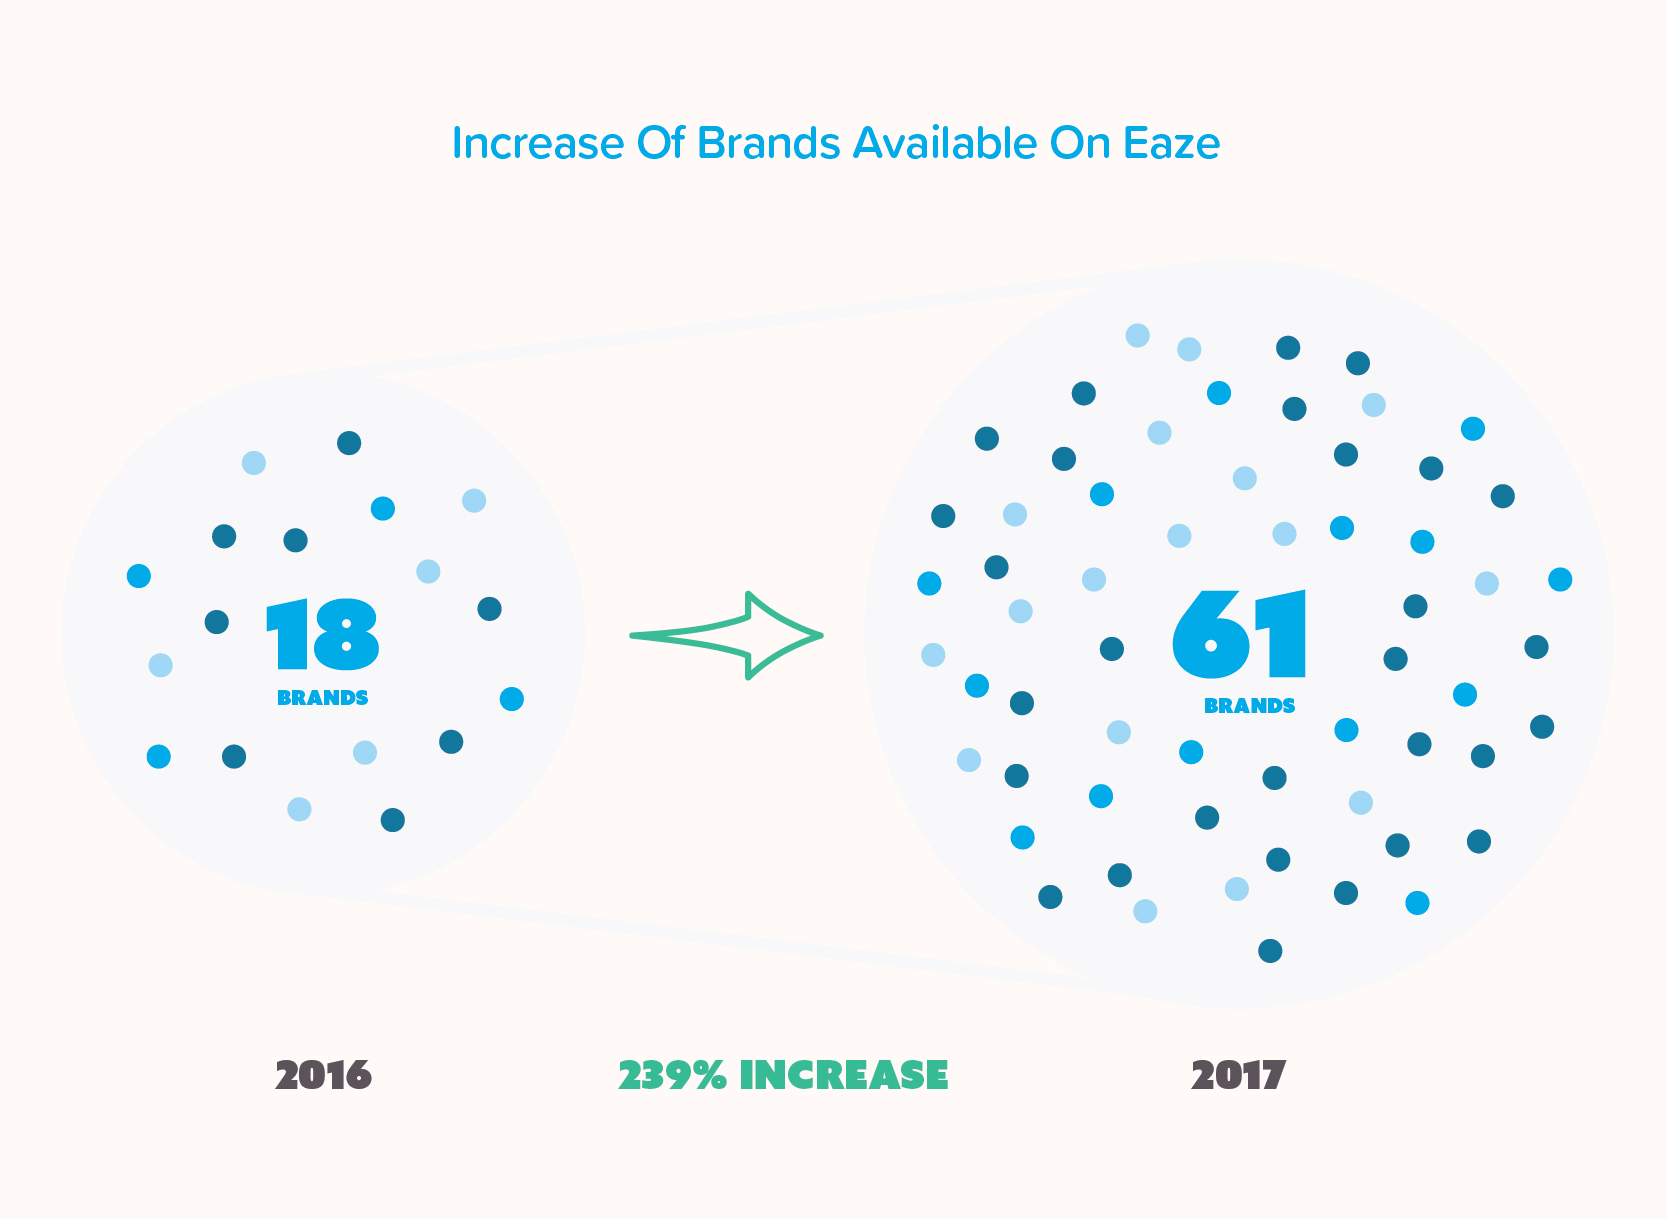 Infographic of the increase of available brands on Eaze